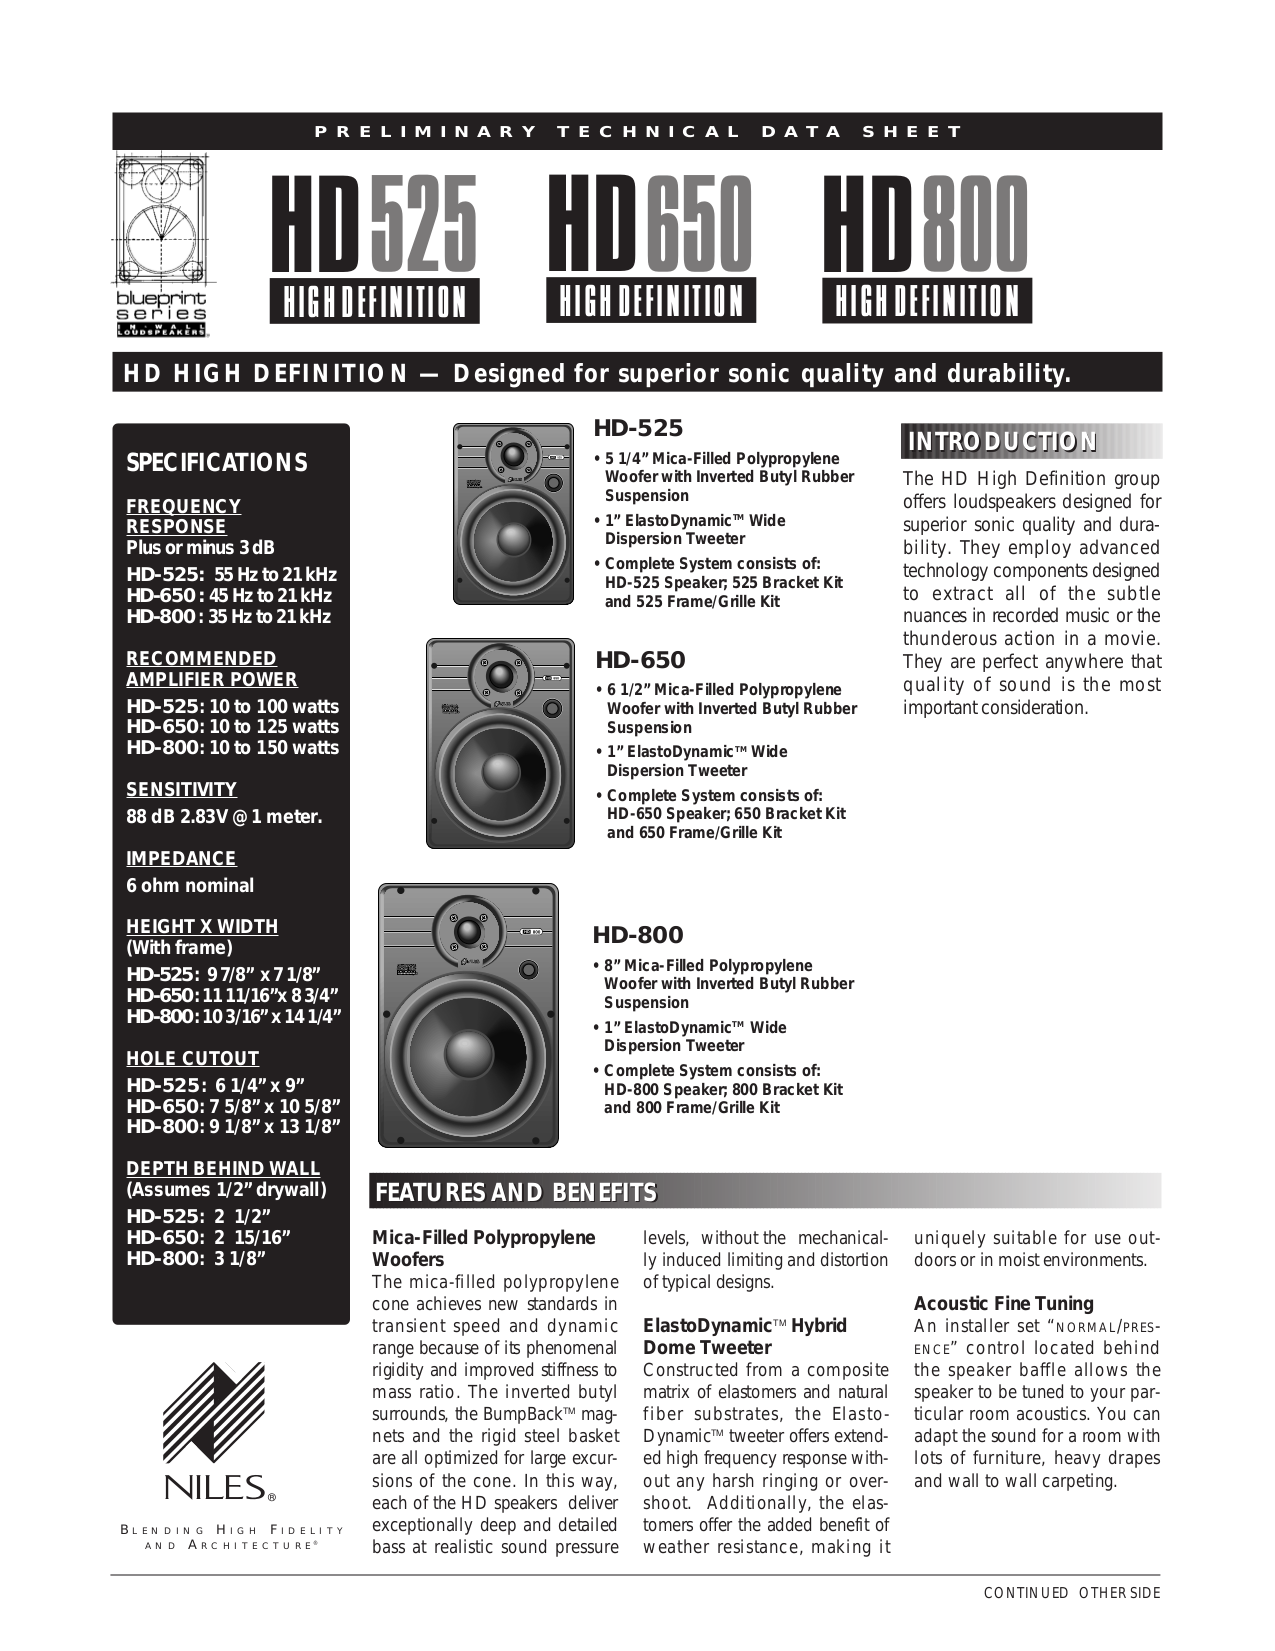 pdf for Niles Speaker HD800 manual